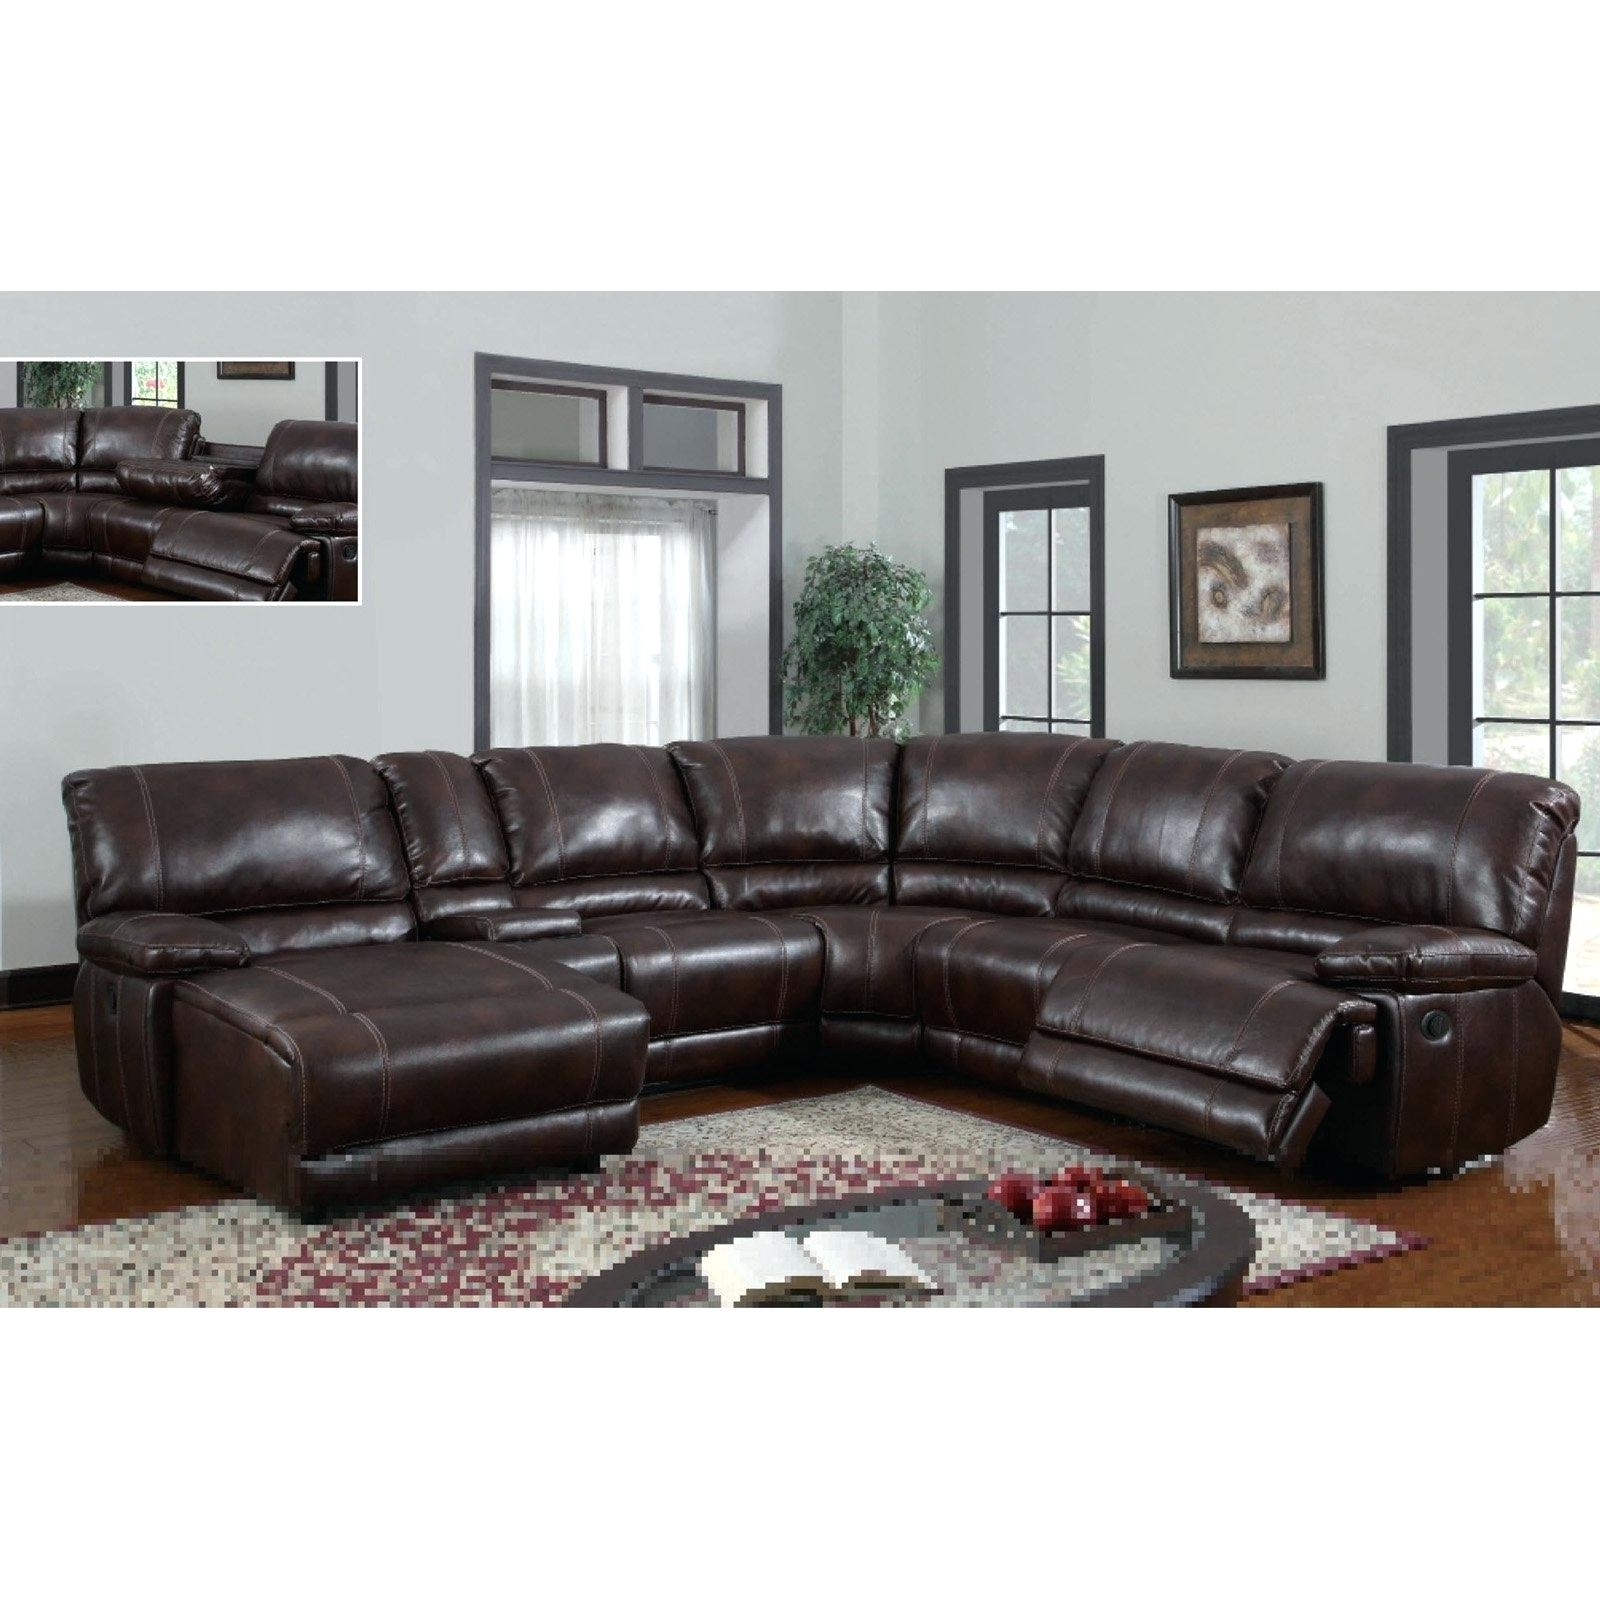 Best And Newest Furniture : 4 Seater Sofa Sale Big Sofa Universal 3 Seater Sofa With Large 4 Seater Sofas (View 1 of 20)